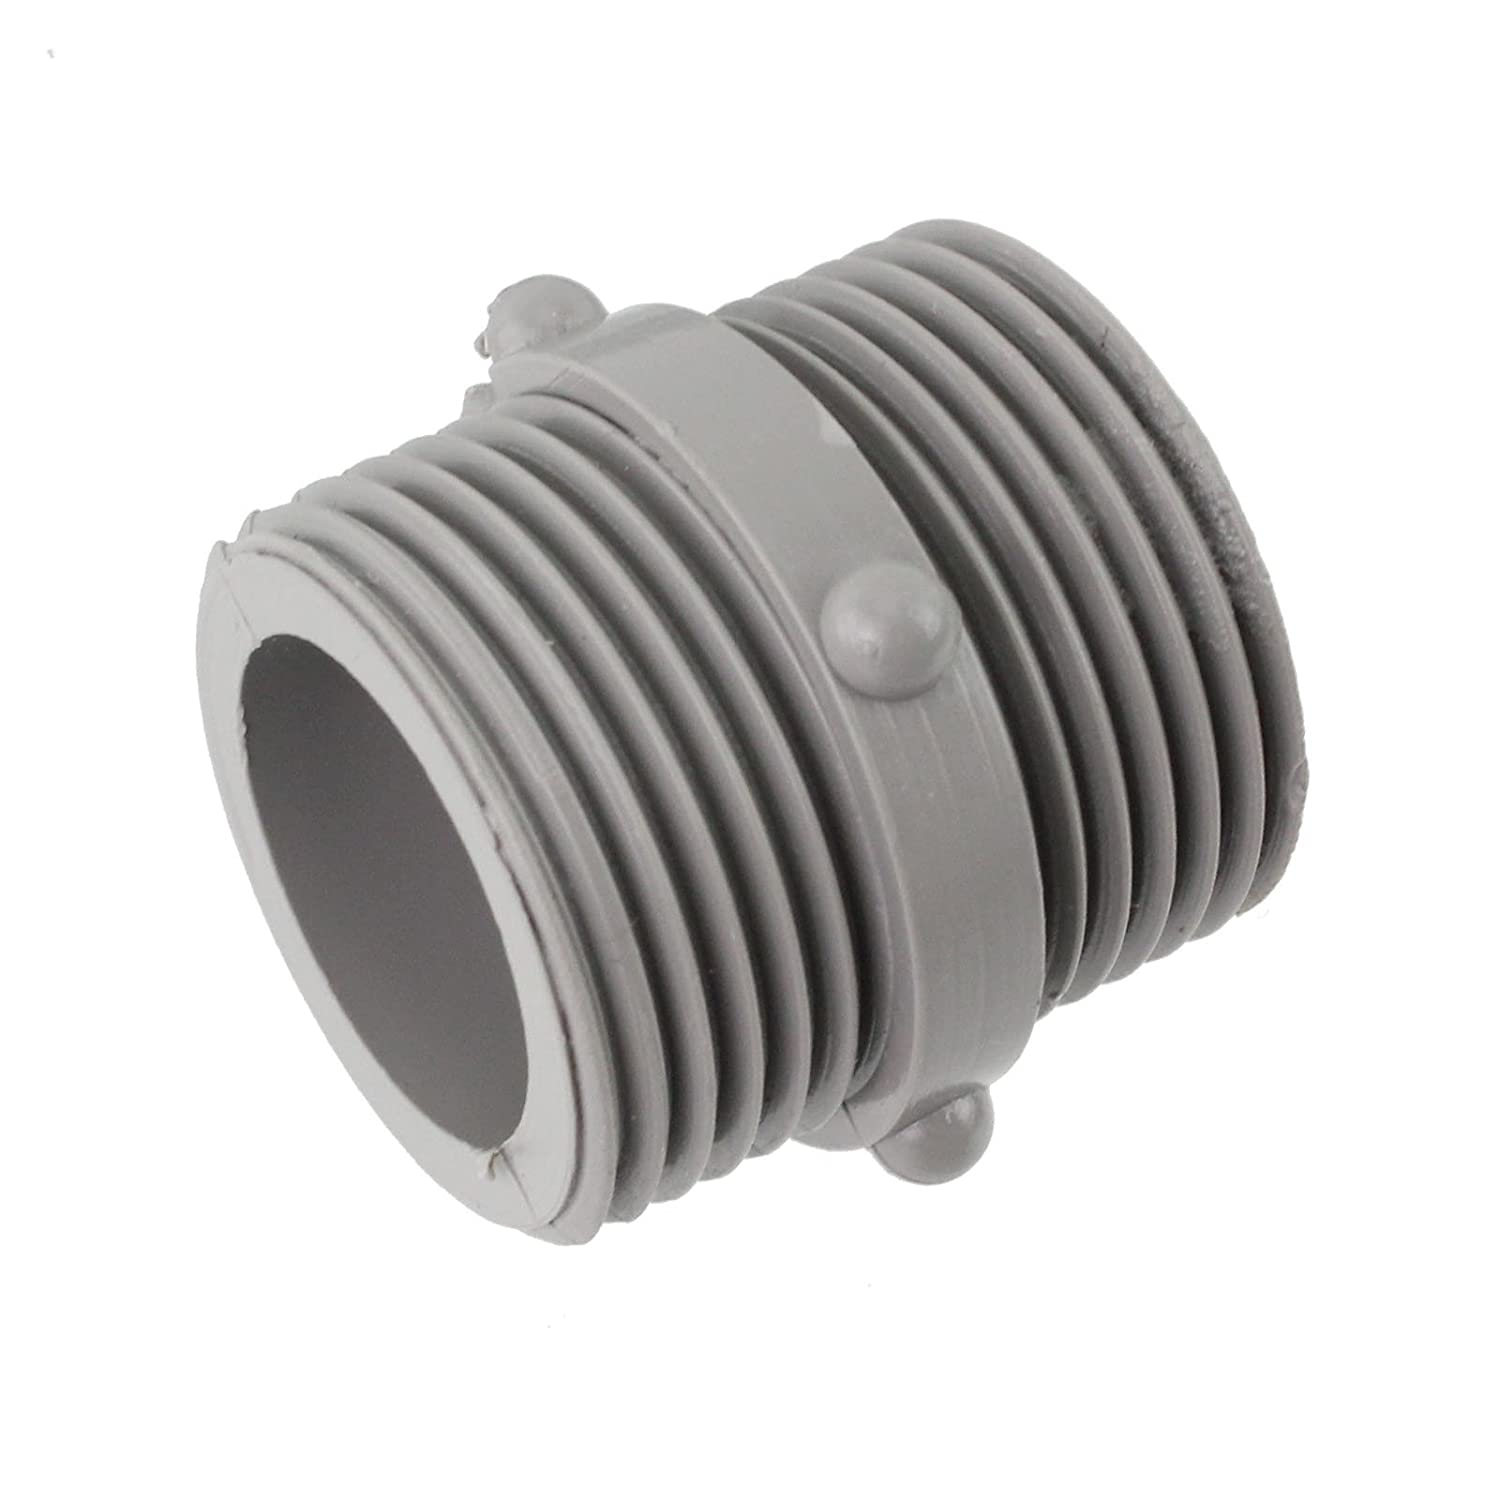 SPARES2GO Straight End Cold Water Fill Inlet Hose Extension for Essentials Dishwasher 2.5M